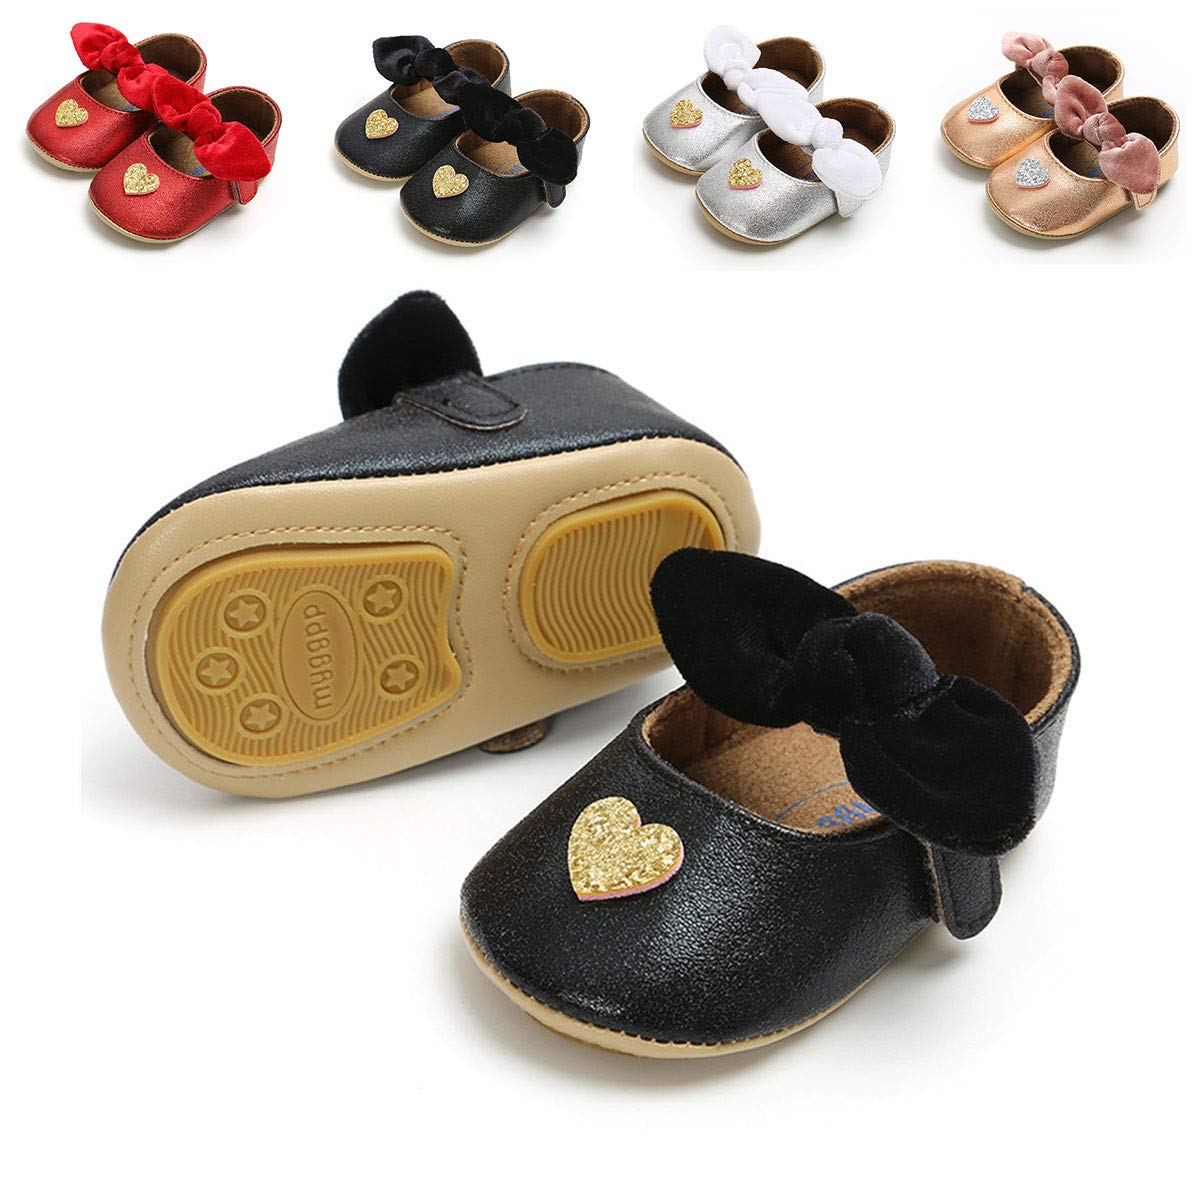 e0dcac201f04 Amazon.com | Timatego Infant Baby Girls Dress Shoes Mary Jane Flats with  Bowknot Non-Slip Toddler First Walkers Newborn Princess Shoes | Mary Jane